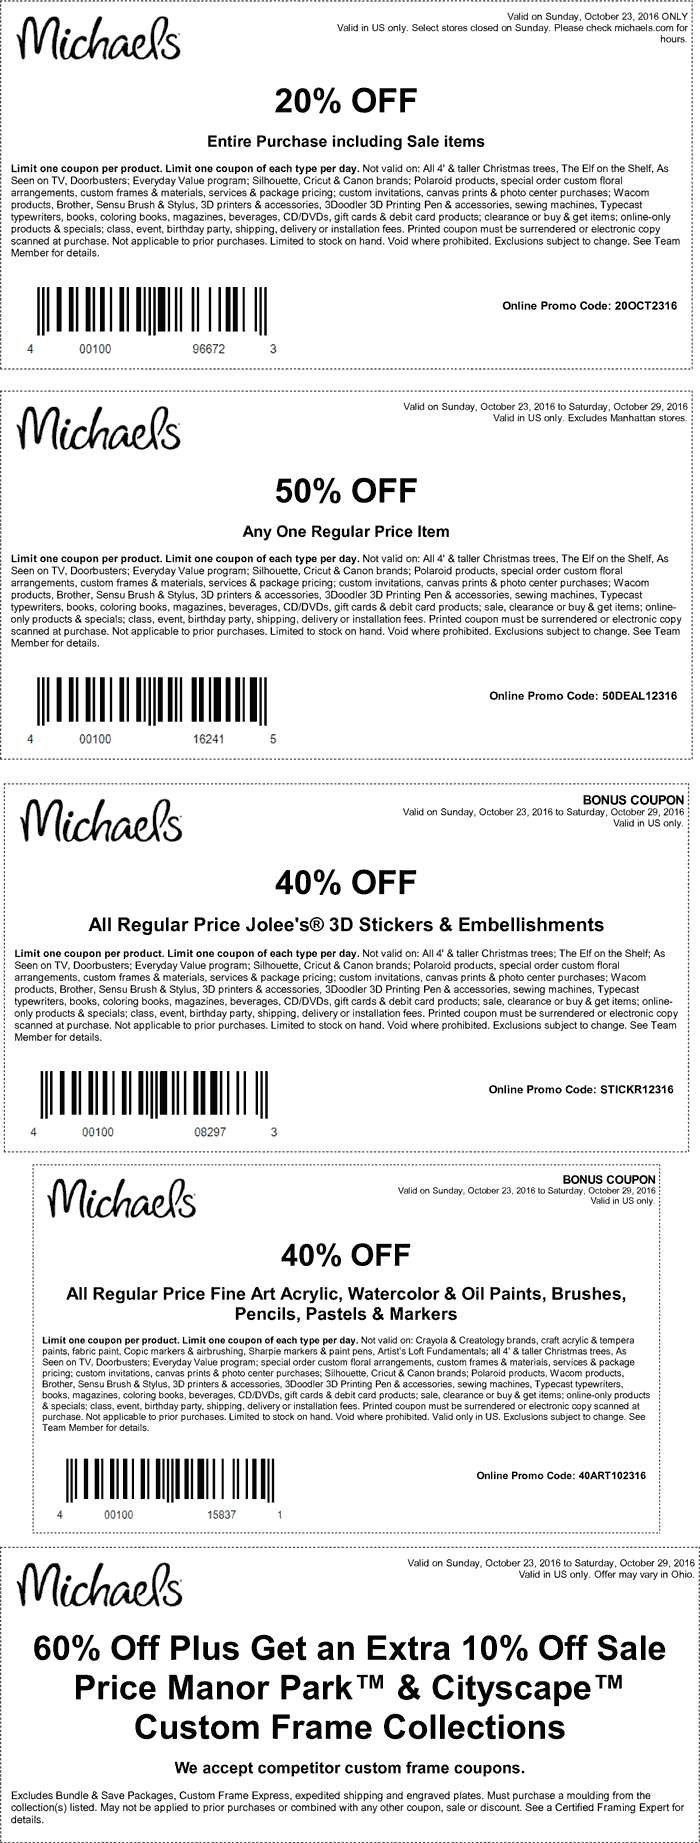 Michaels.com Promo Coupon 20-50% off & more at Michaels, or online via promo code 50DEAL12316